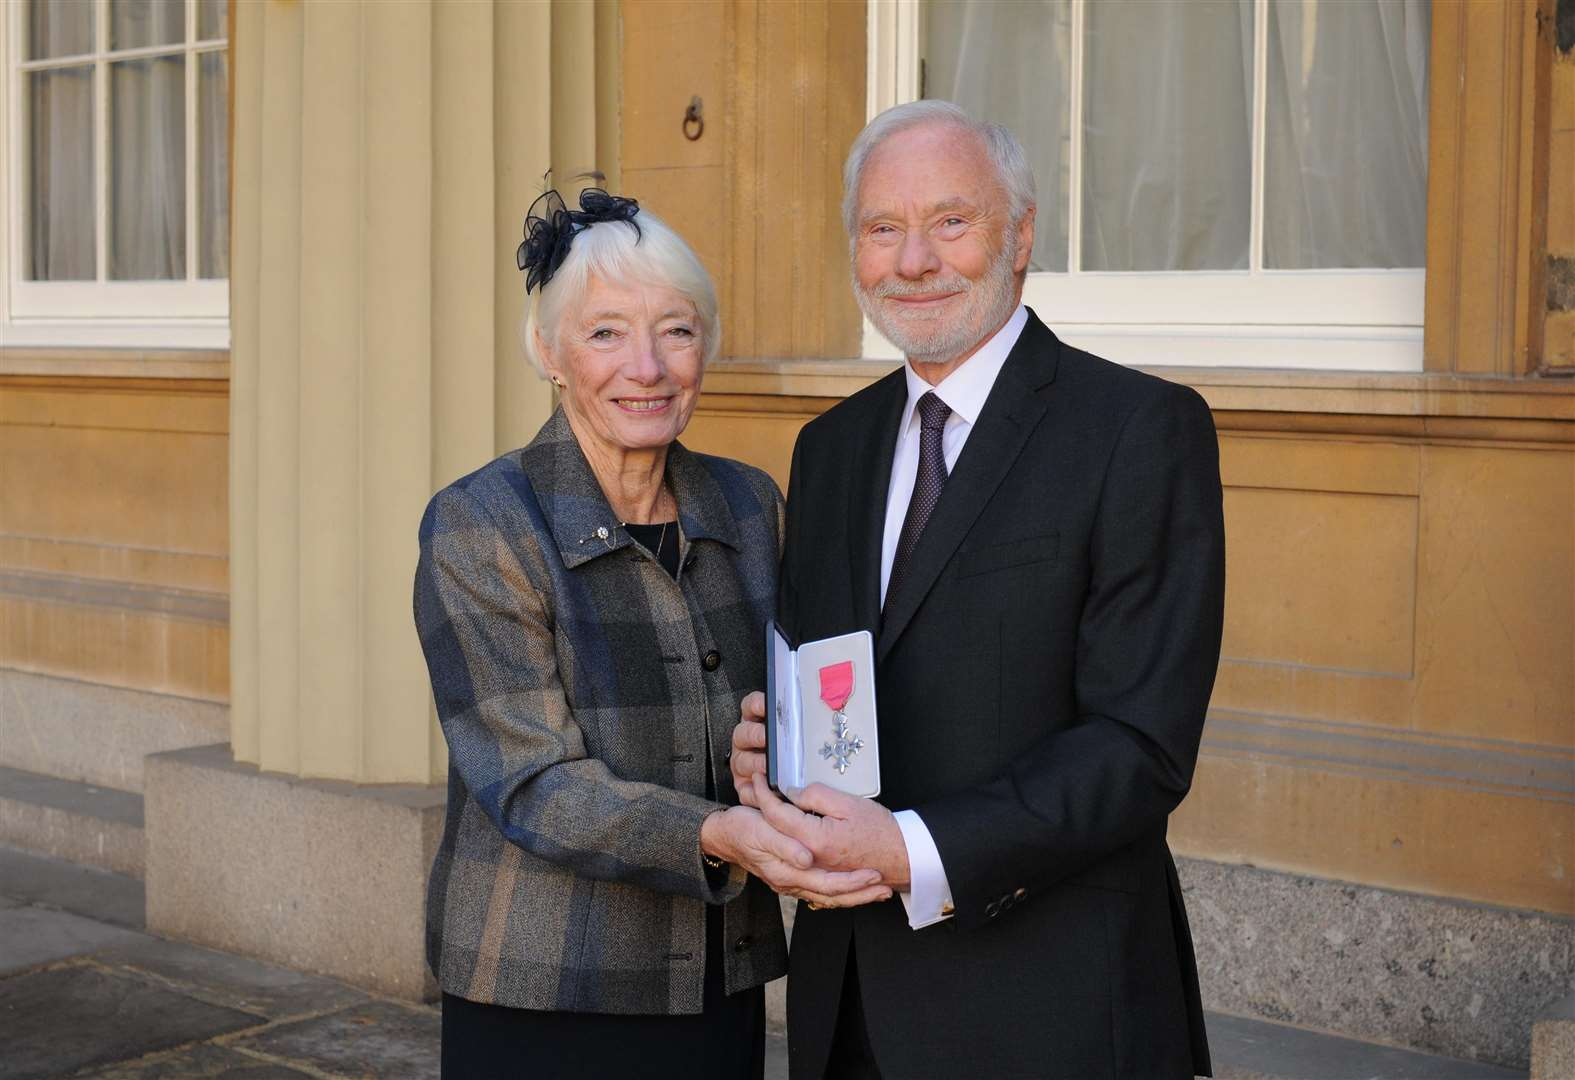 Community stalwart from Clare honoured with MBE